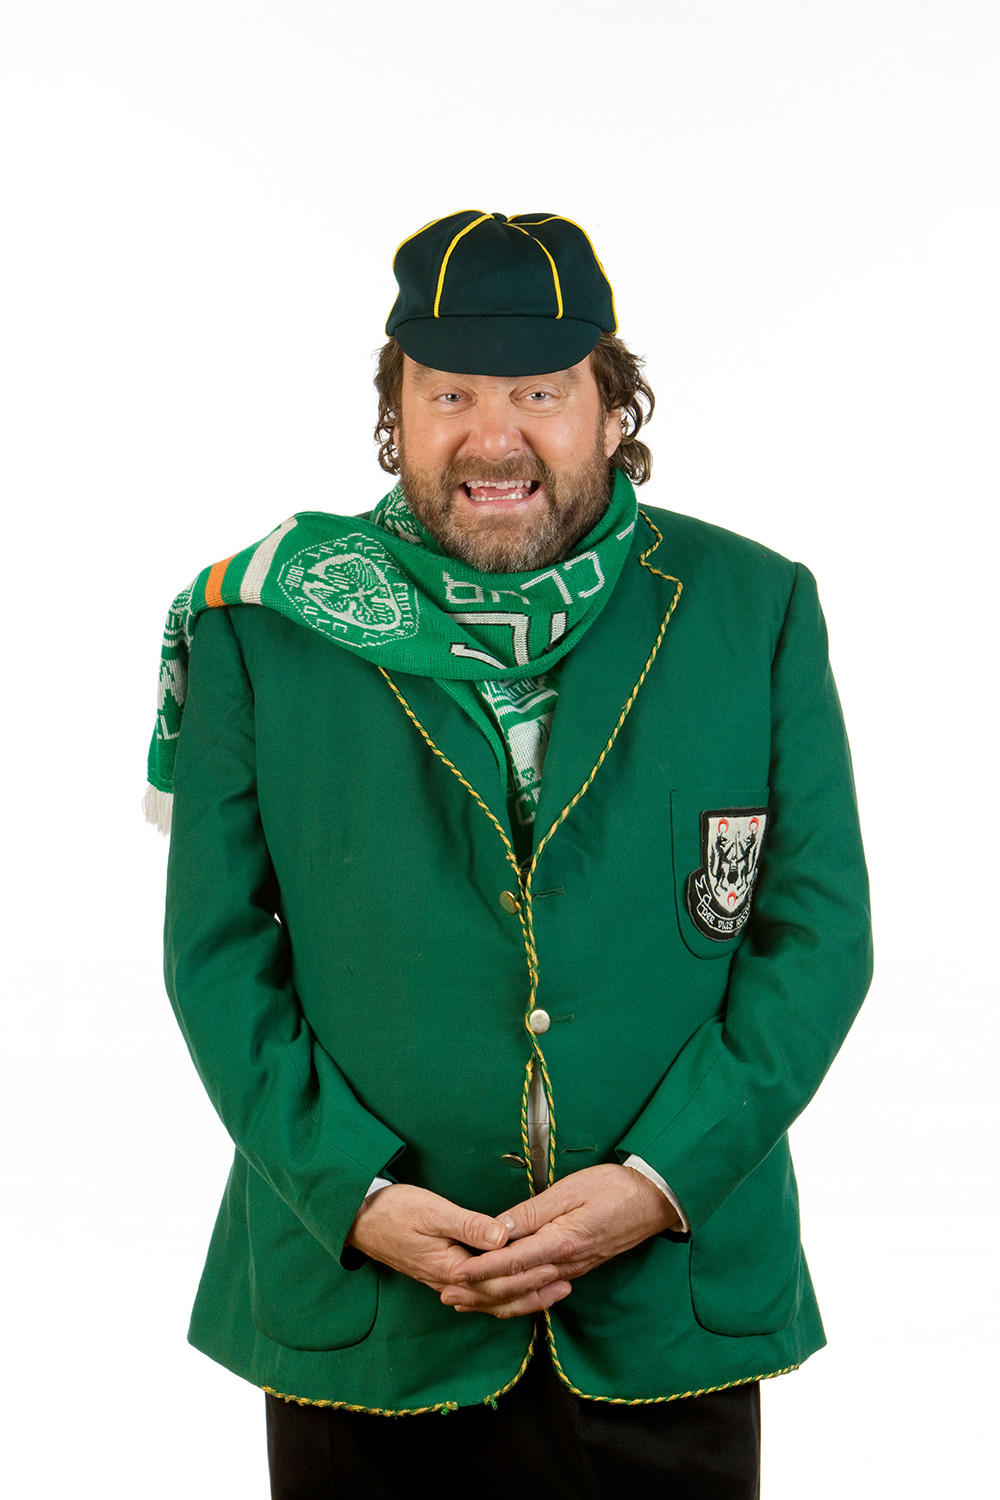 Brendan Grace in character as Bottler, one of his most famous characters.